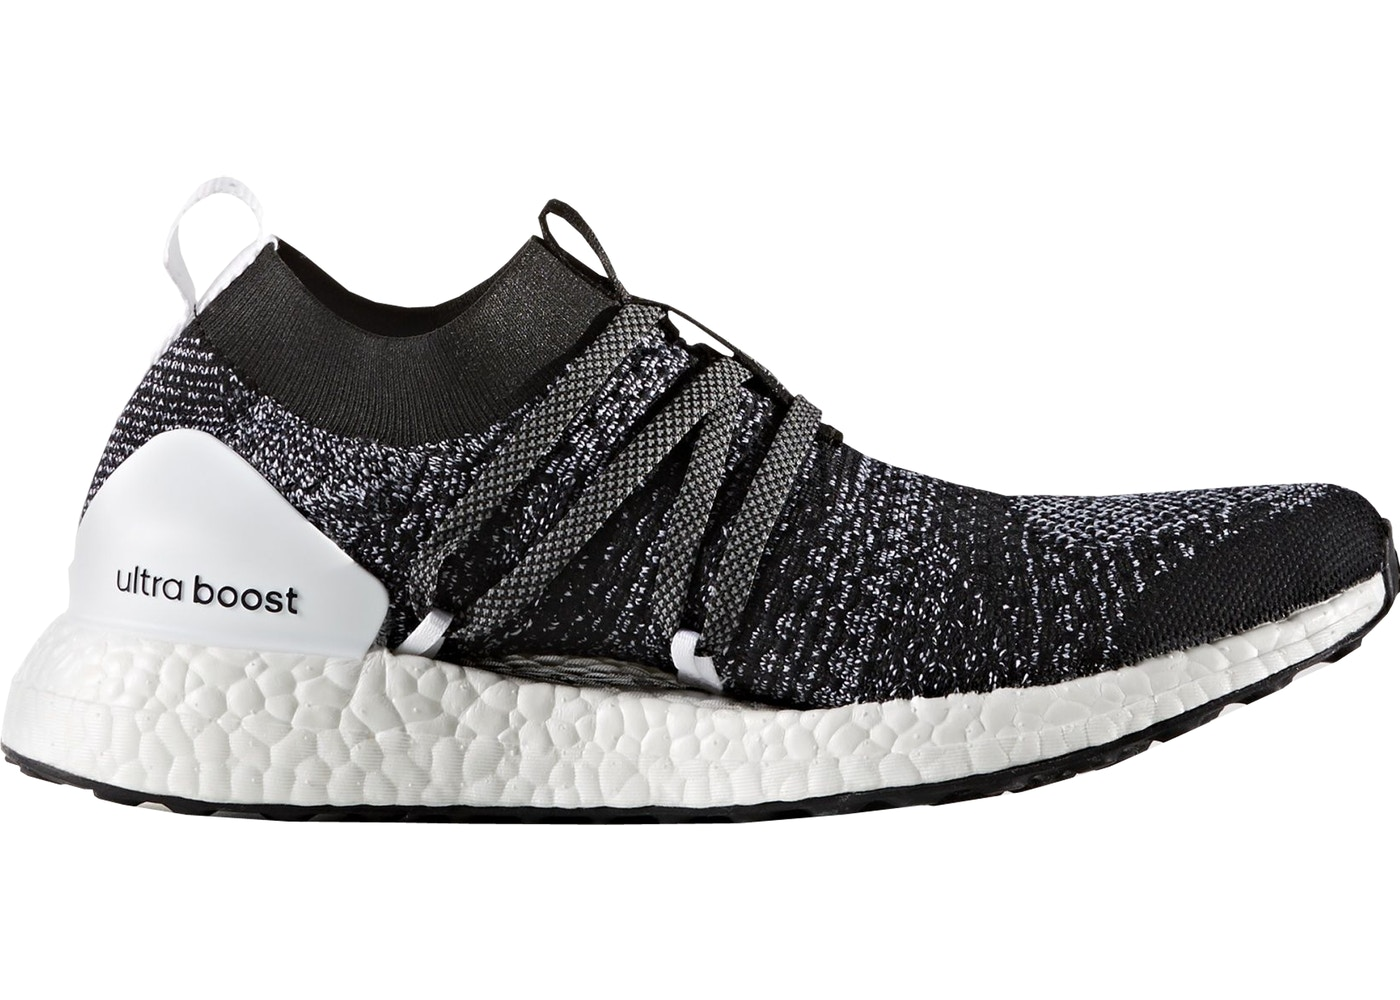 a24a9a8d5 adidas Ultra Boost X Stella McCartney Black White (W) - BB5512